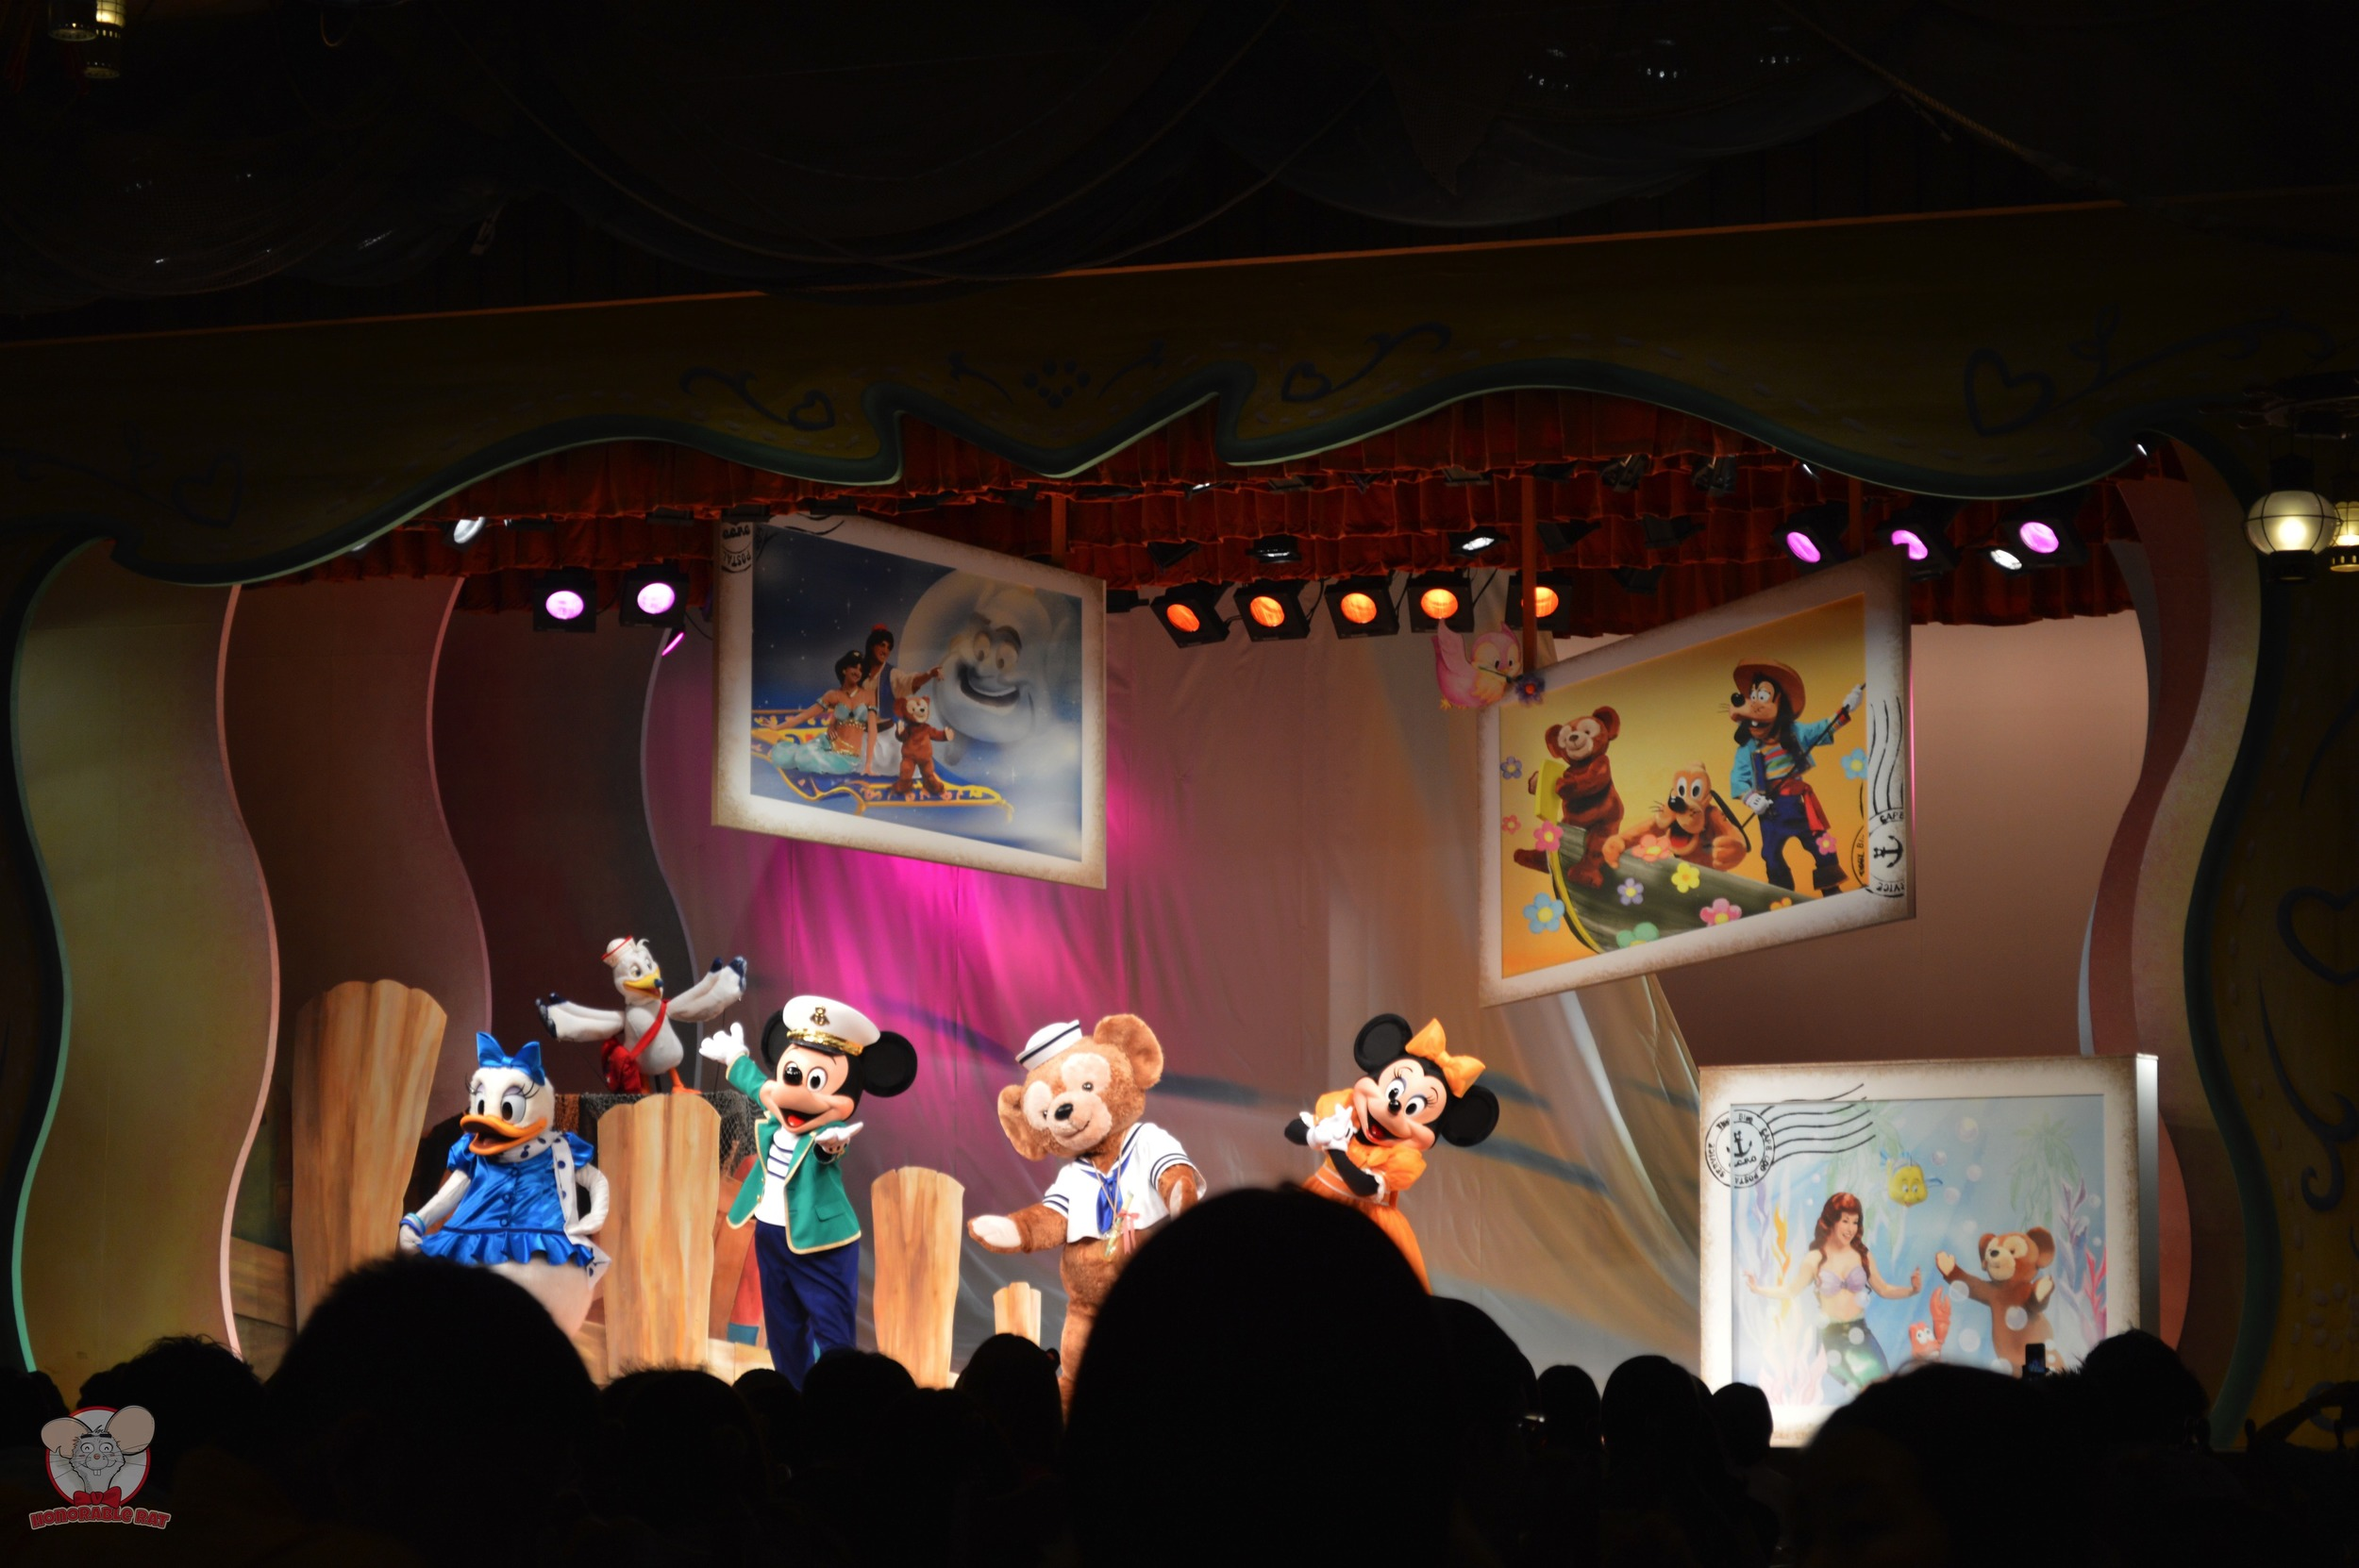 More Disney characters up on stage